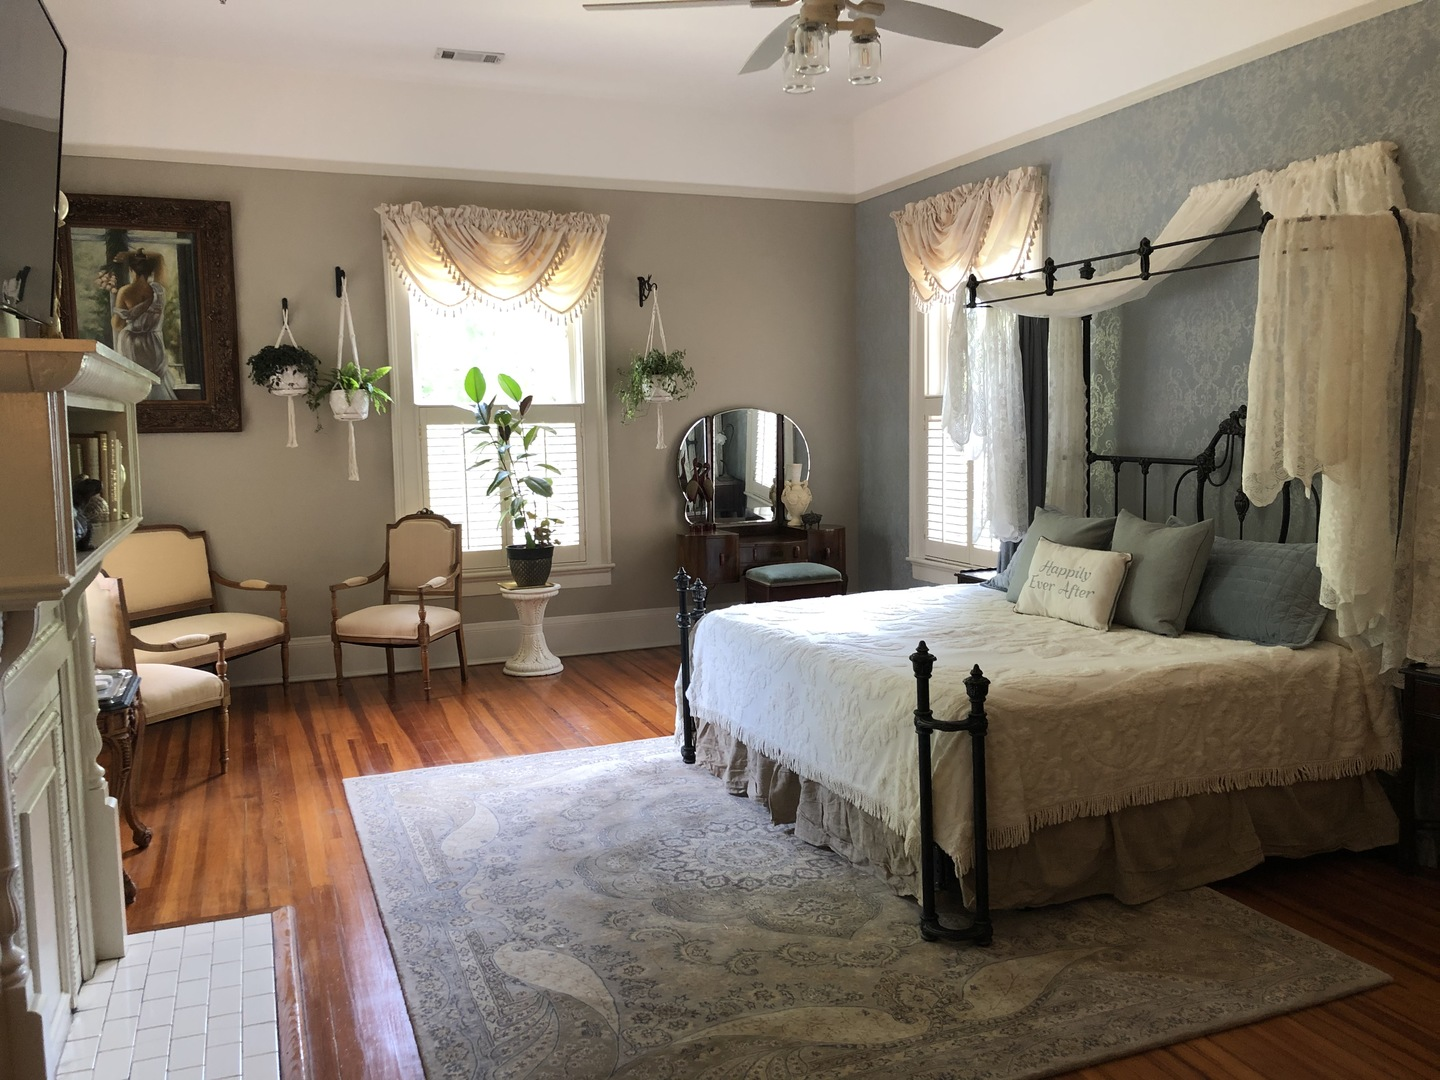 A bedroom with a large bed in a room at Heritage House Lodging & Events.